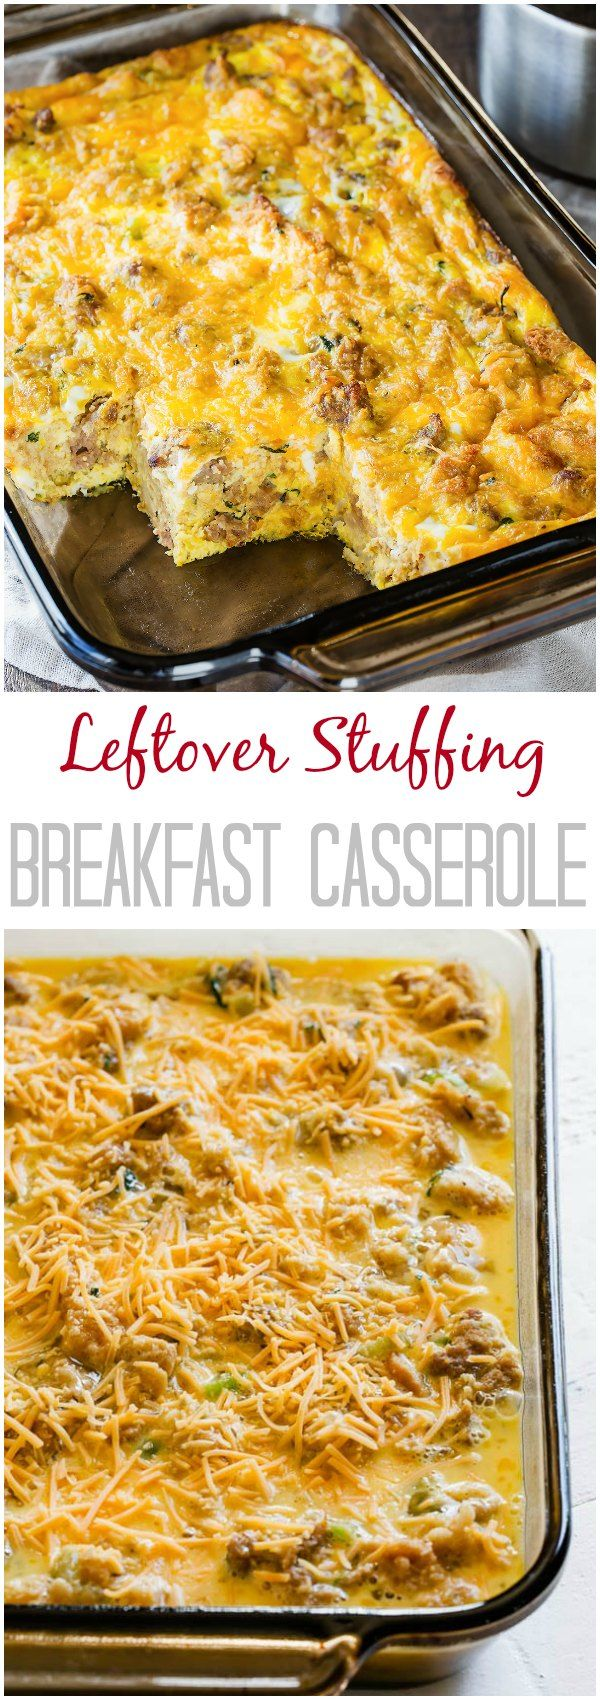 Photo of Leftover Stuffing Breakfast Casserole ~Sweet & Savory